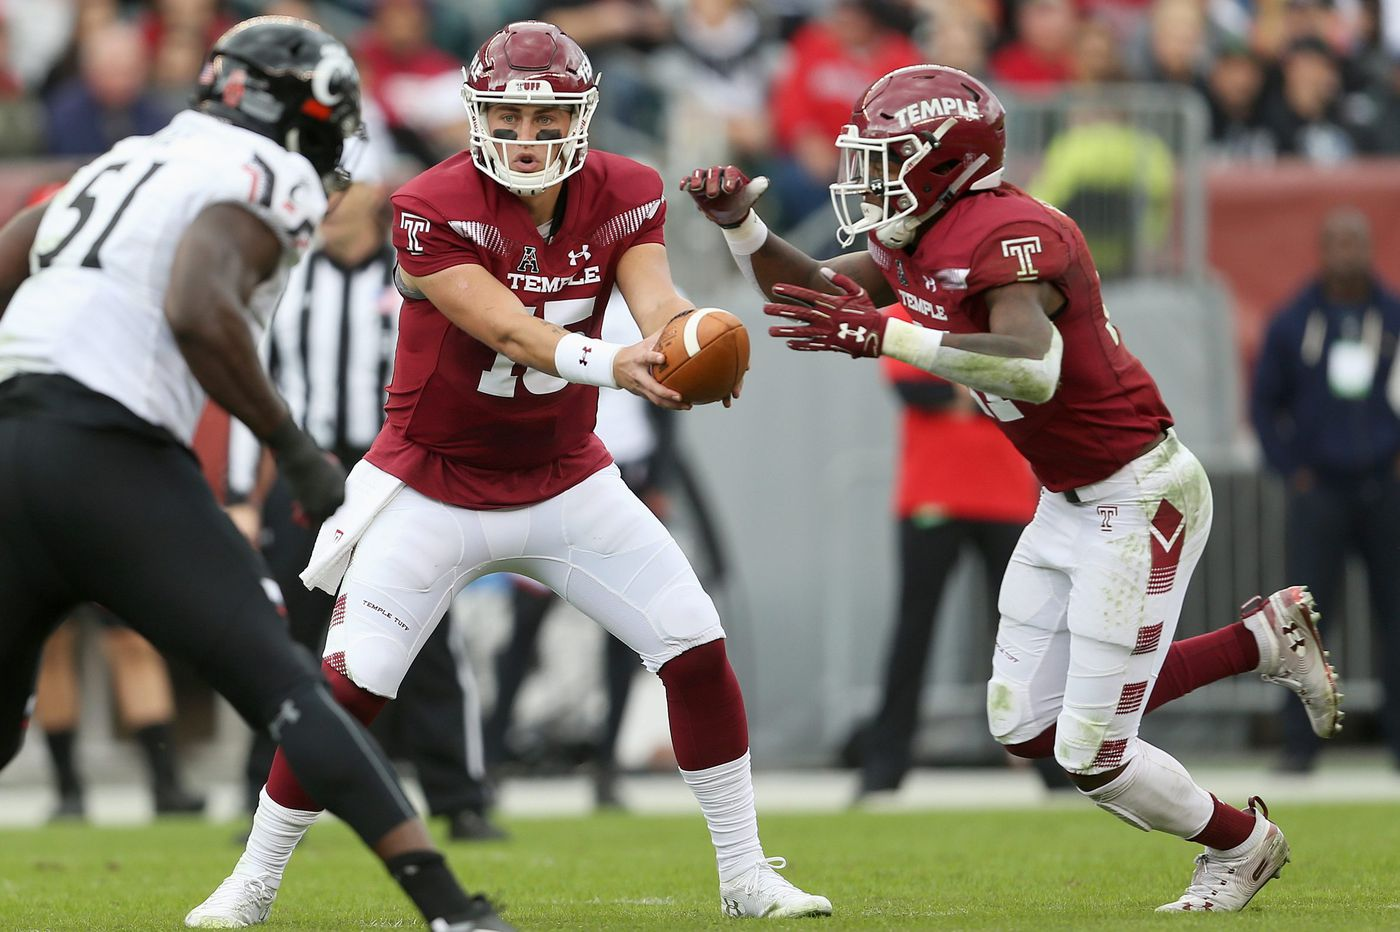 Temple QB Anthony Russo out for UConn game with injury